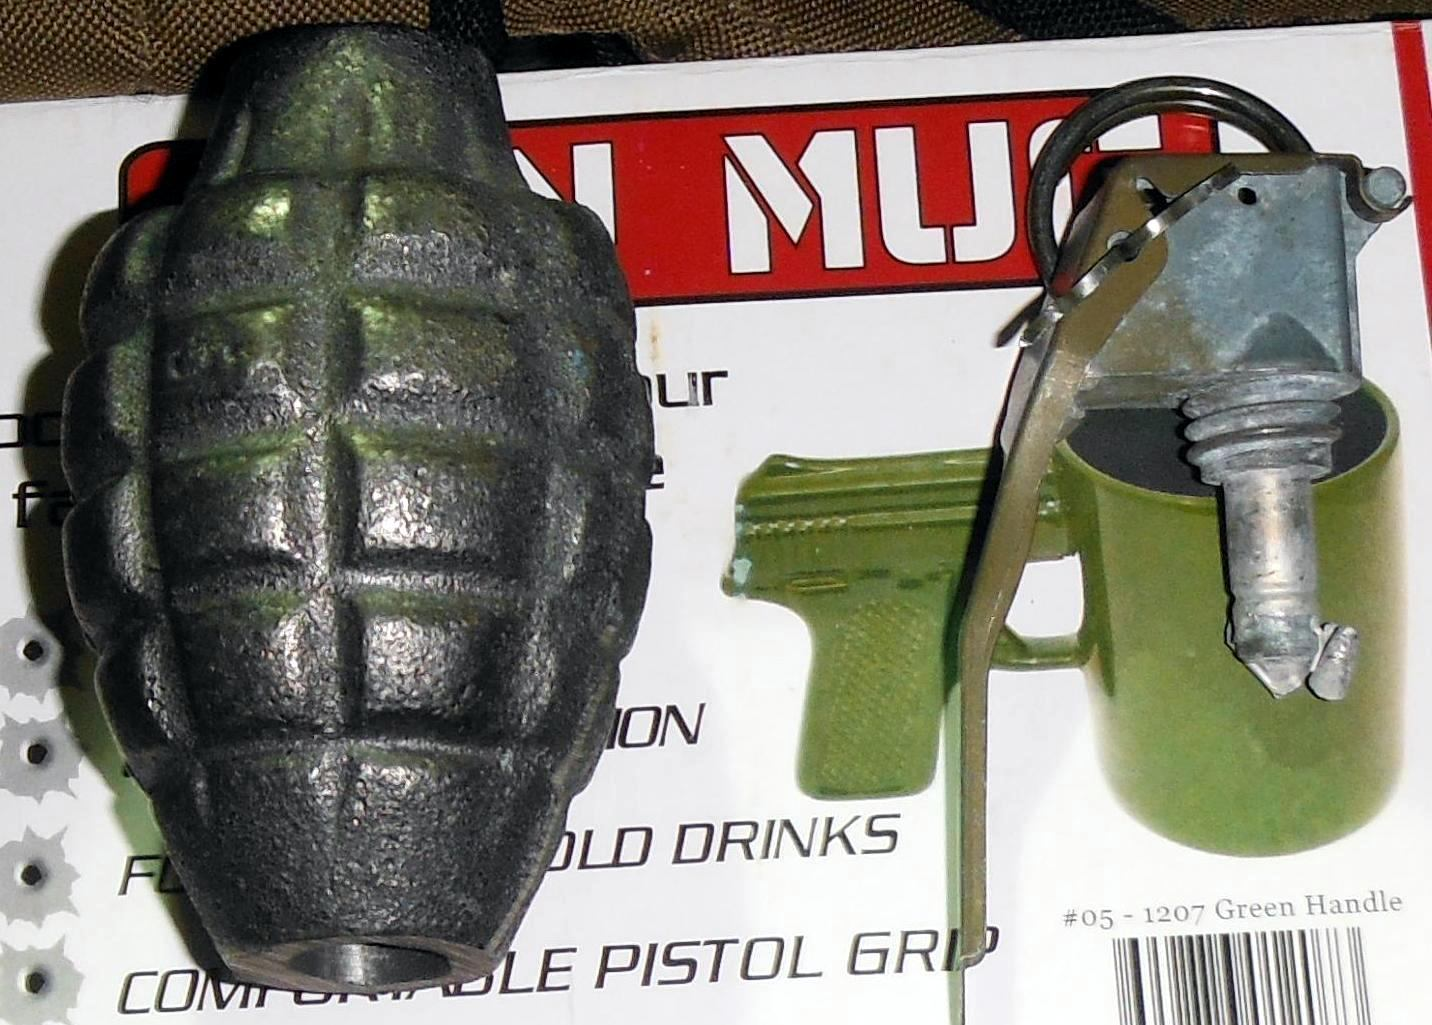 Inert grenade was discovered in a checked bag at Las Vegas (LAS).